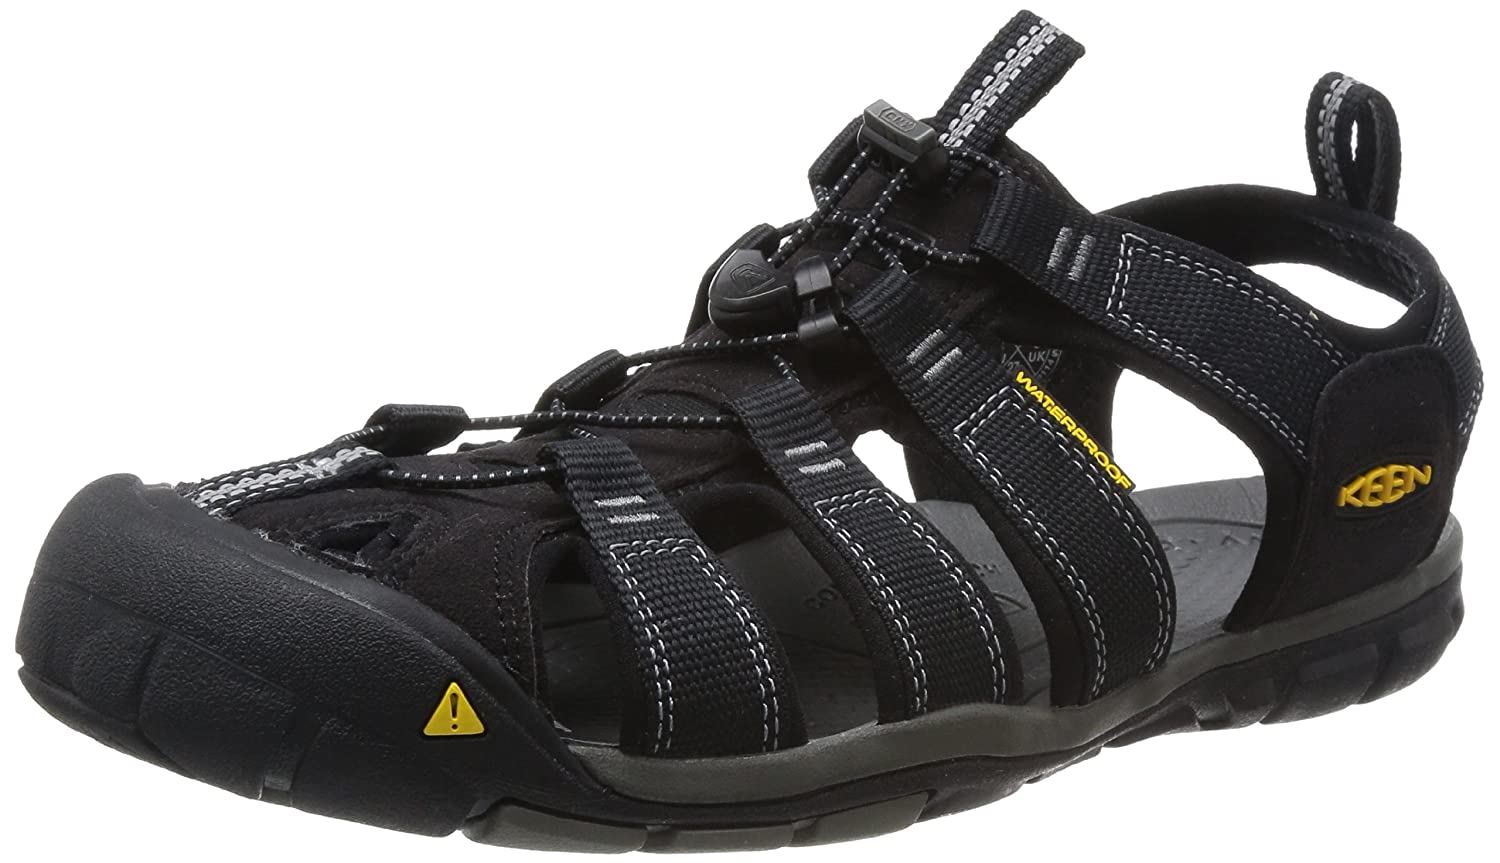 399d921799dfeb KEEN Men's Clearwater CNX M-Raven/Burnt Henna Sandal: Amazon.co.uk: Shoes &  Bags